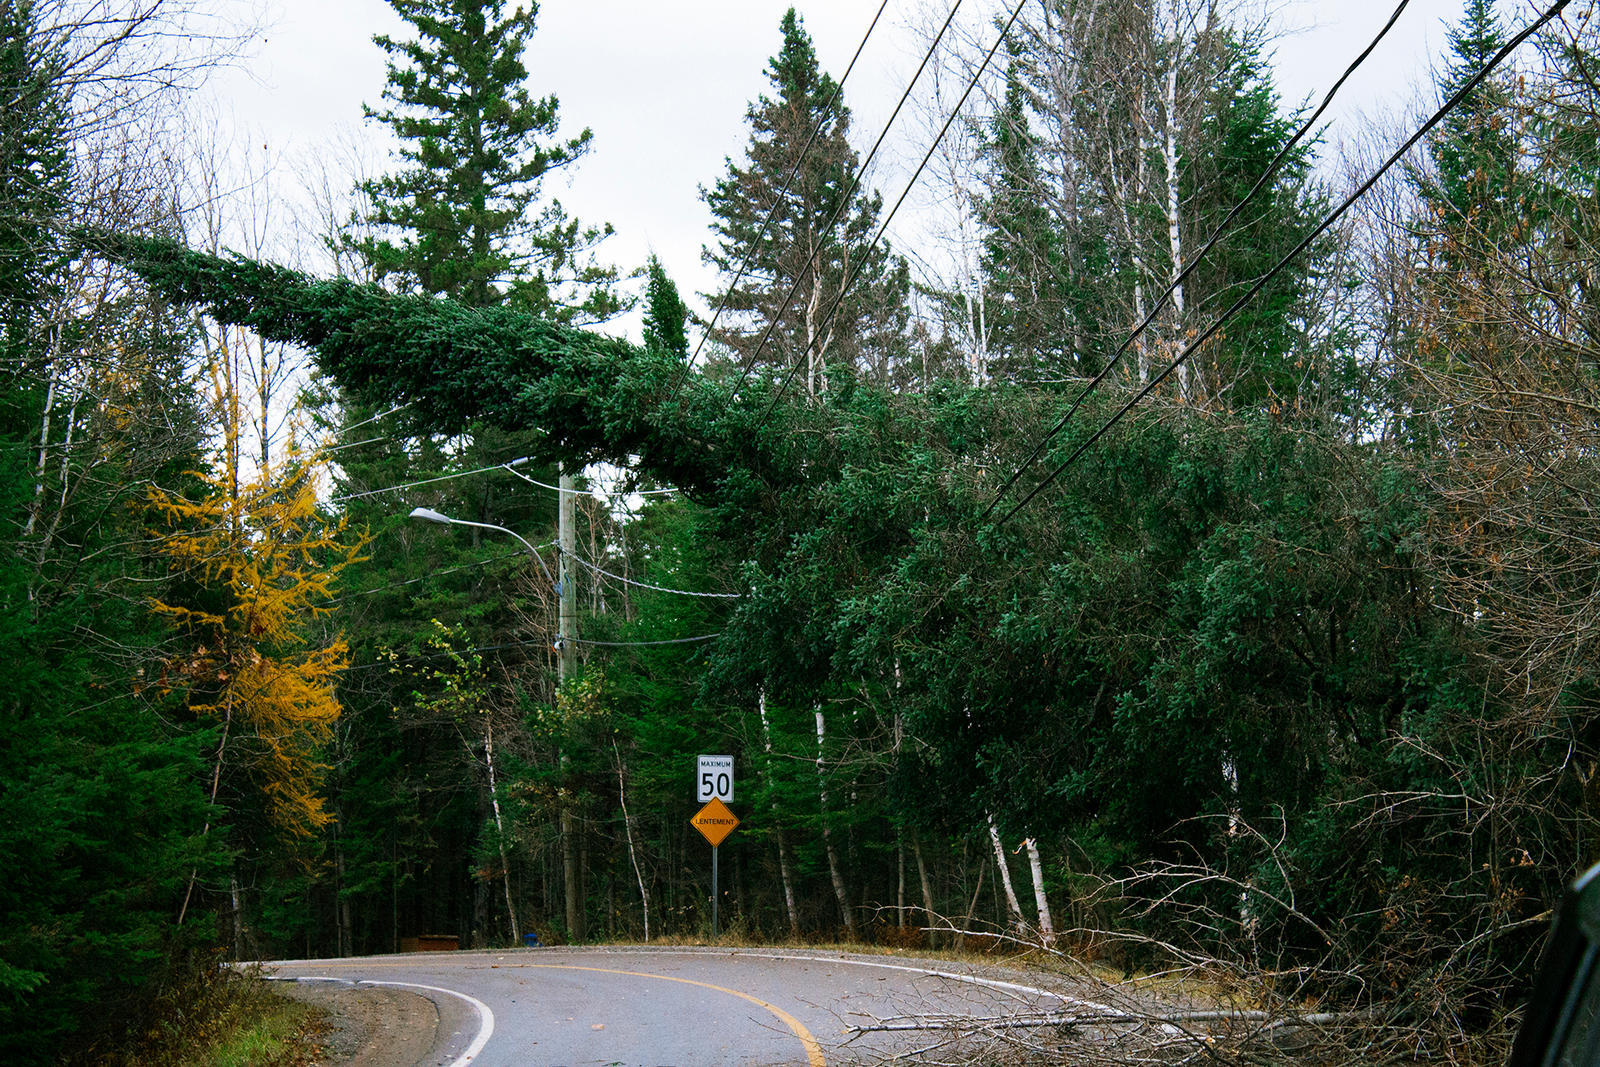 Tree fell down on power lines by jonathanfaulkner